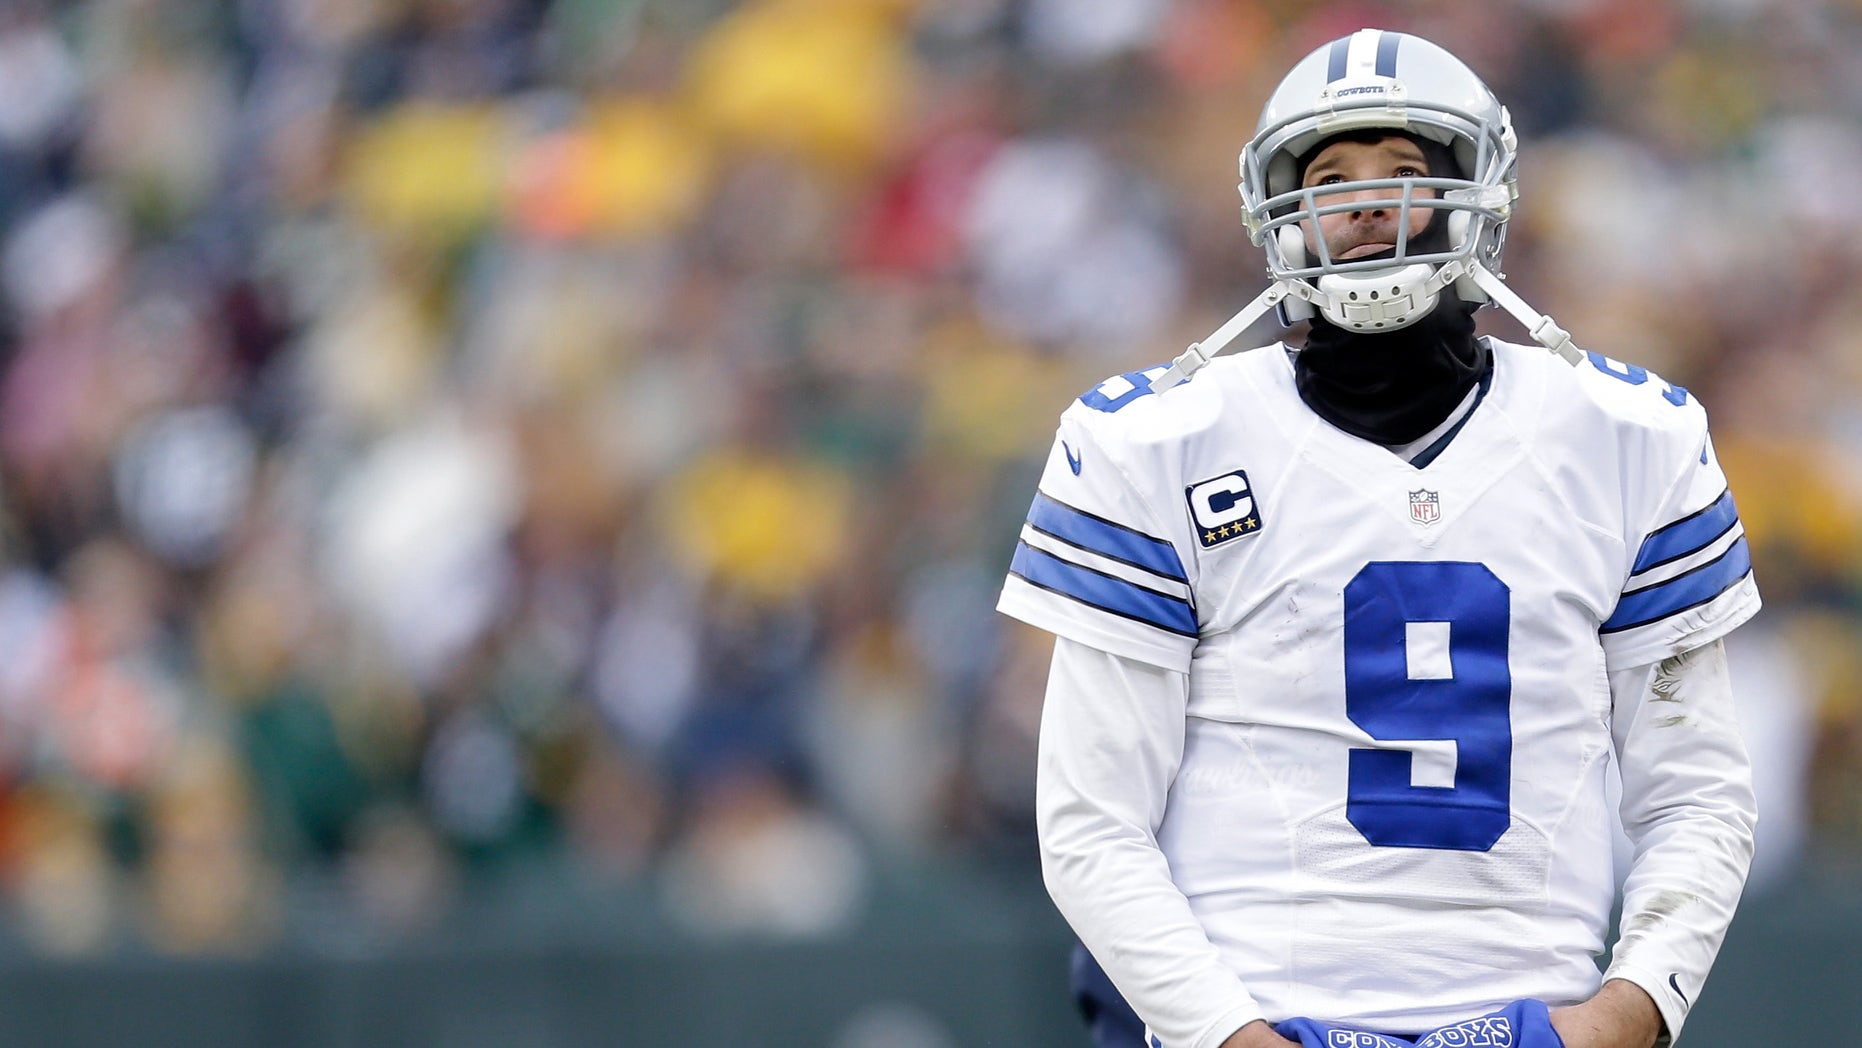 Tony Romo during the NFC Divisional Playoff game against Wisconsin's Green Bay Packers on January 11, 2015.